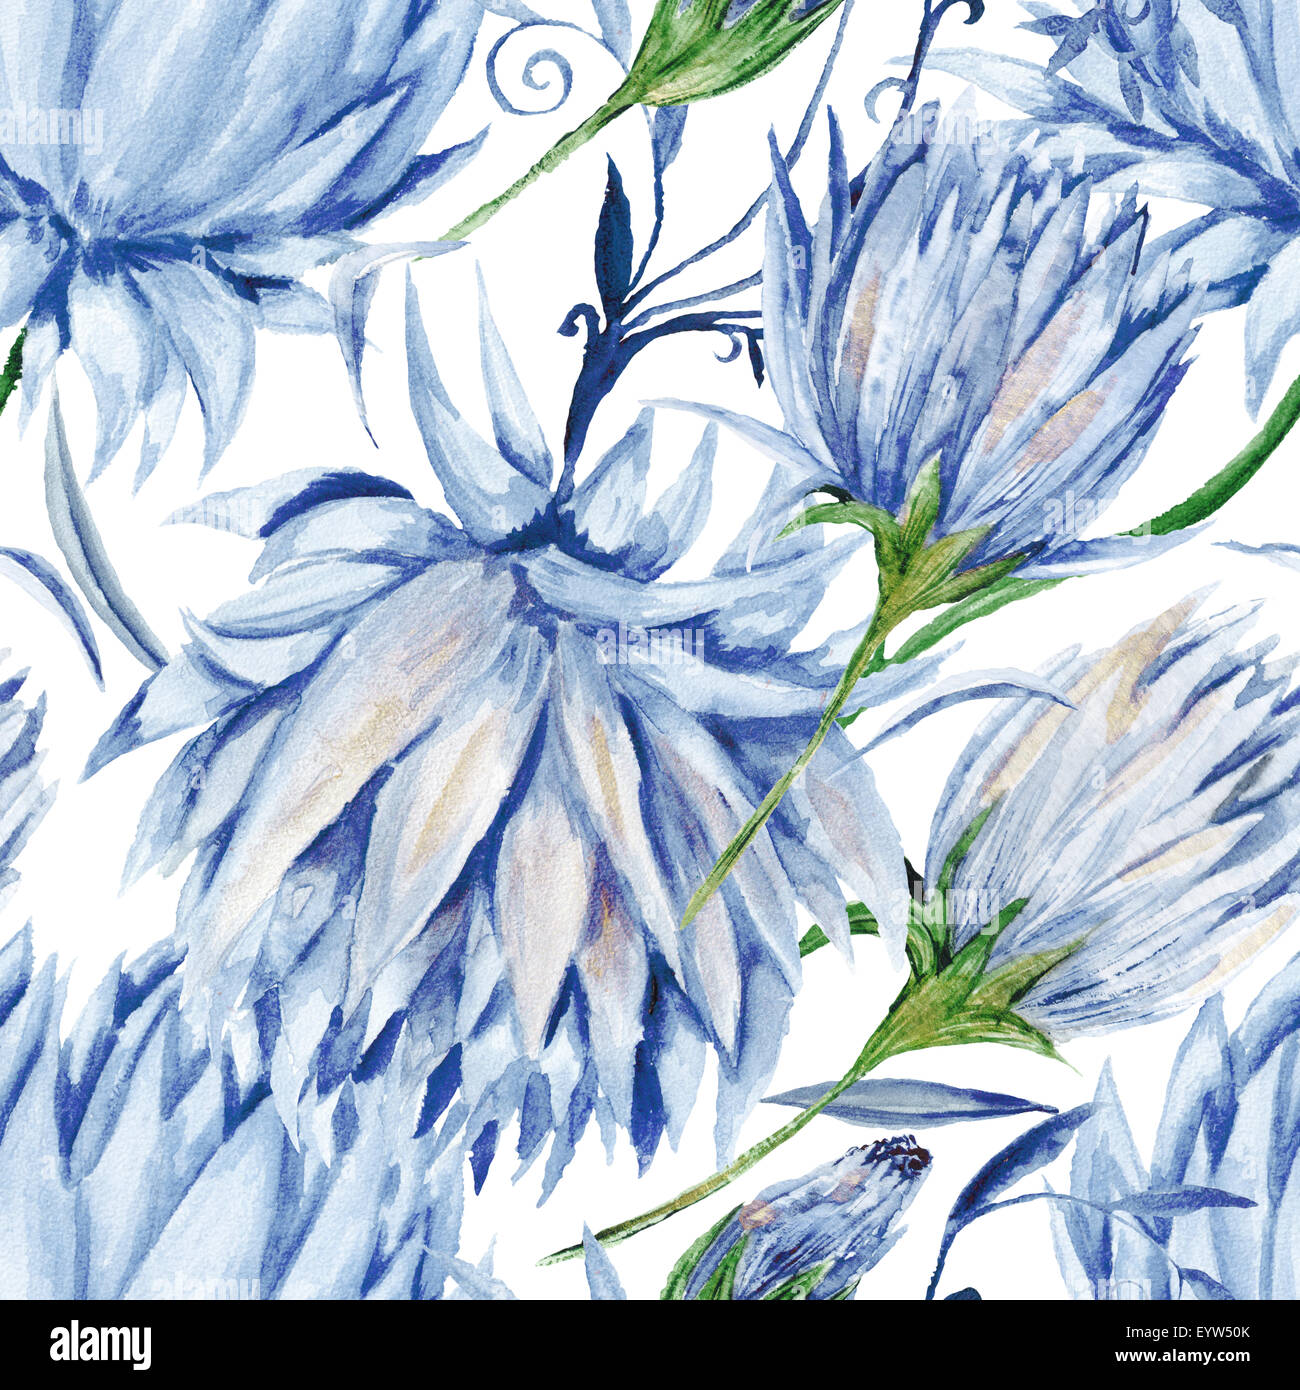 Seamless watercolor background with blue flowers isolated on white seamless watercolor background with blue flowers isolated on white background soft and tender for dhlflorist Gallery